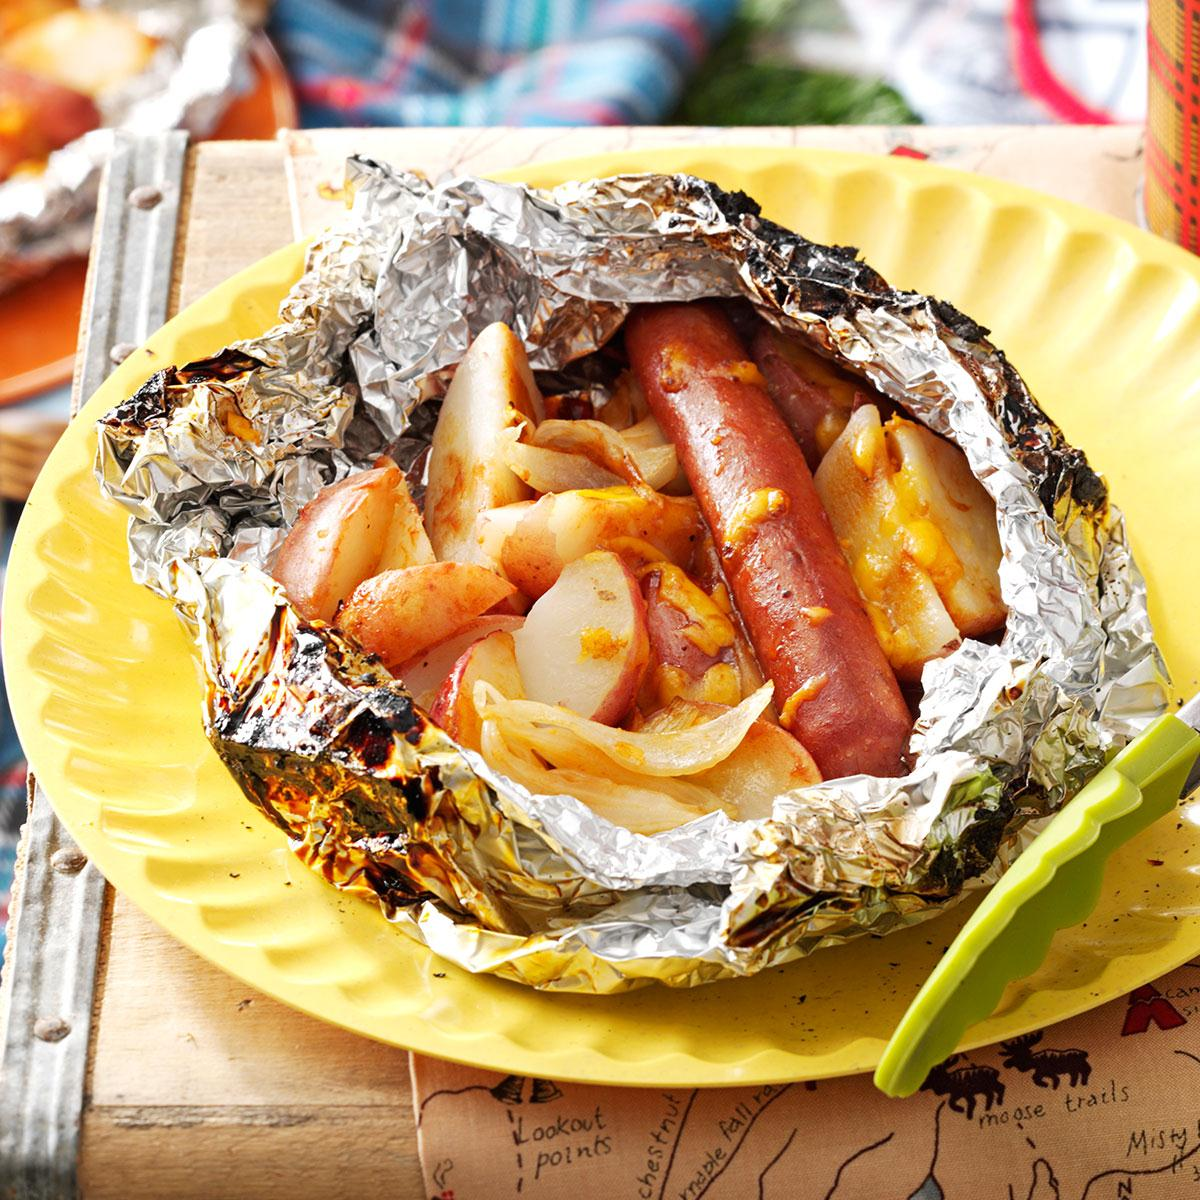 Bake potatoes in foil at home